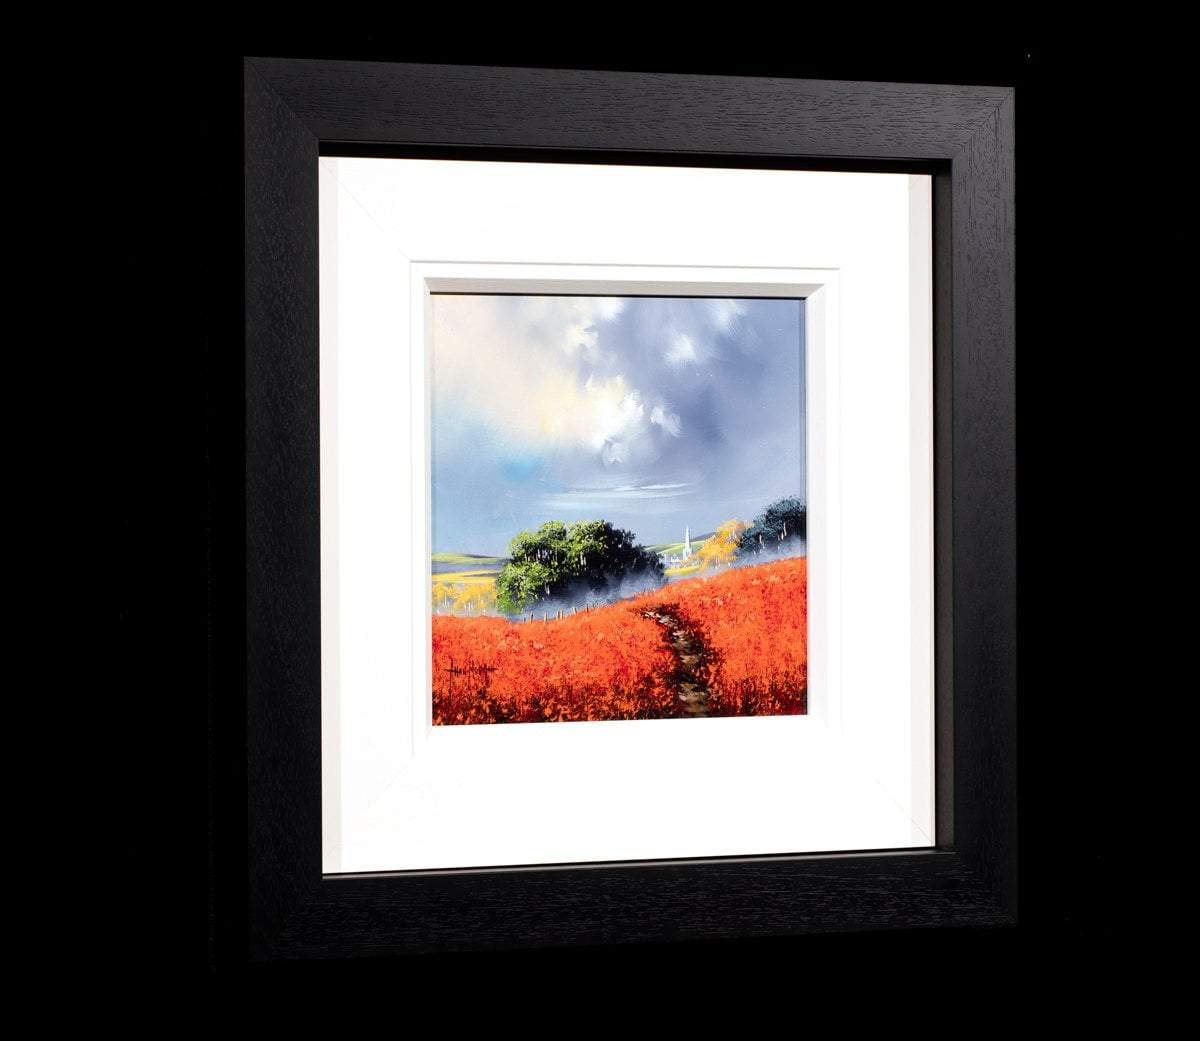 Stormy Vista - Original Allan Morgan Framed